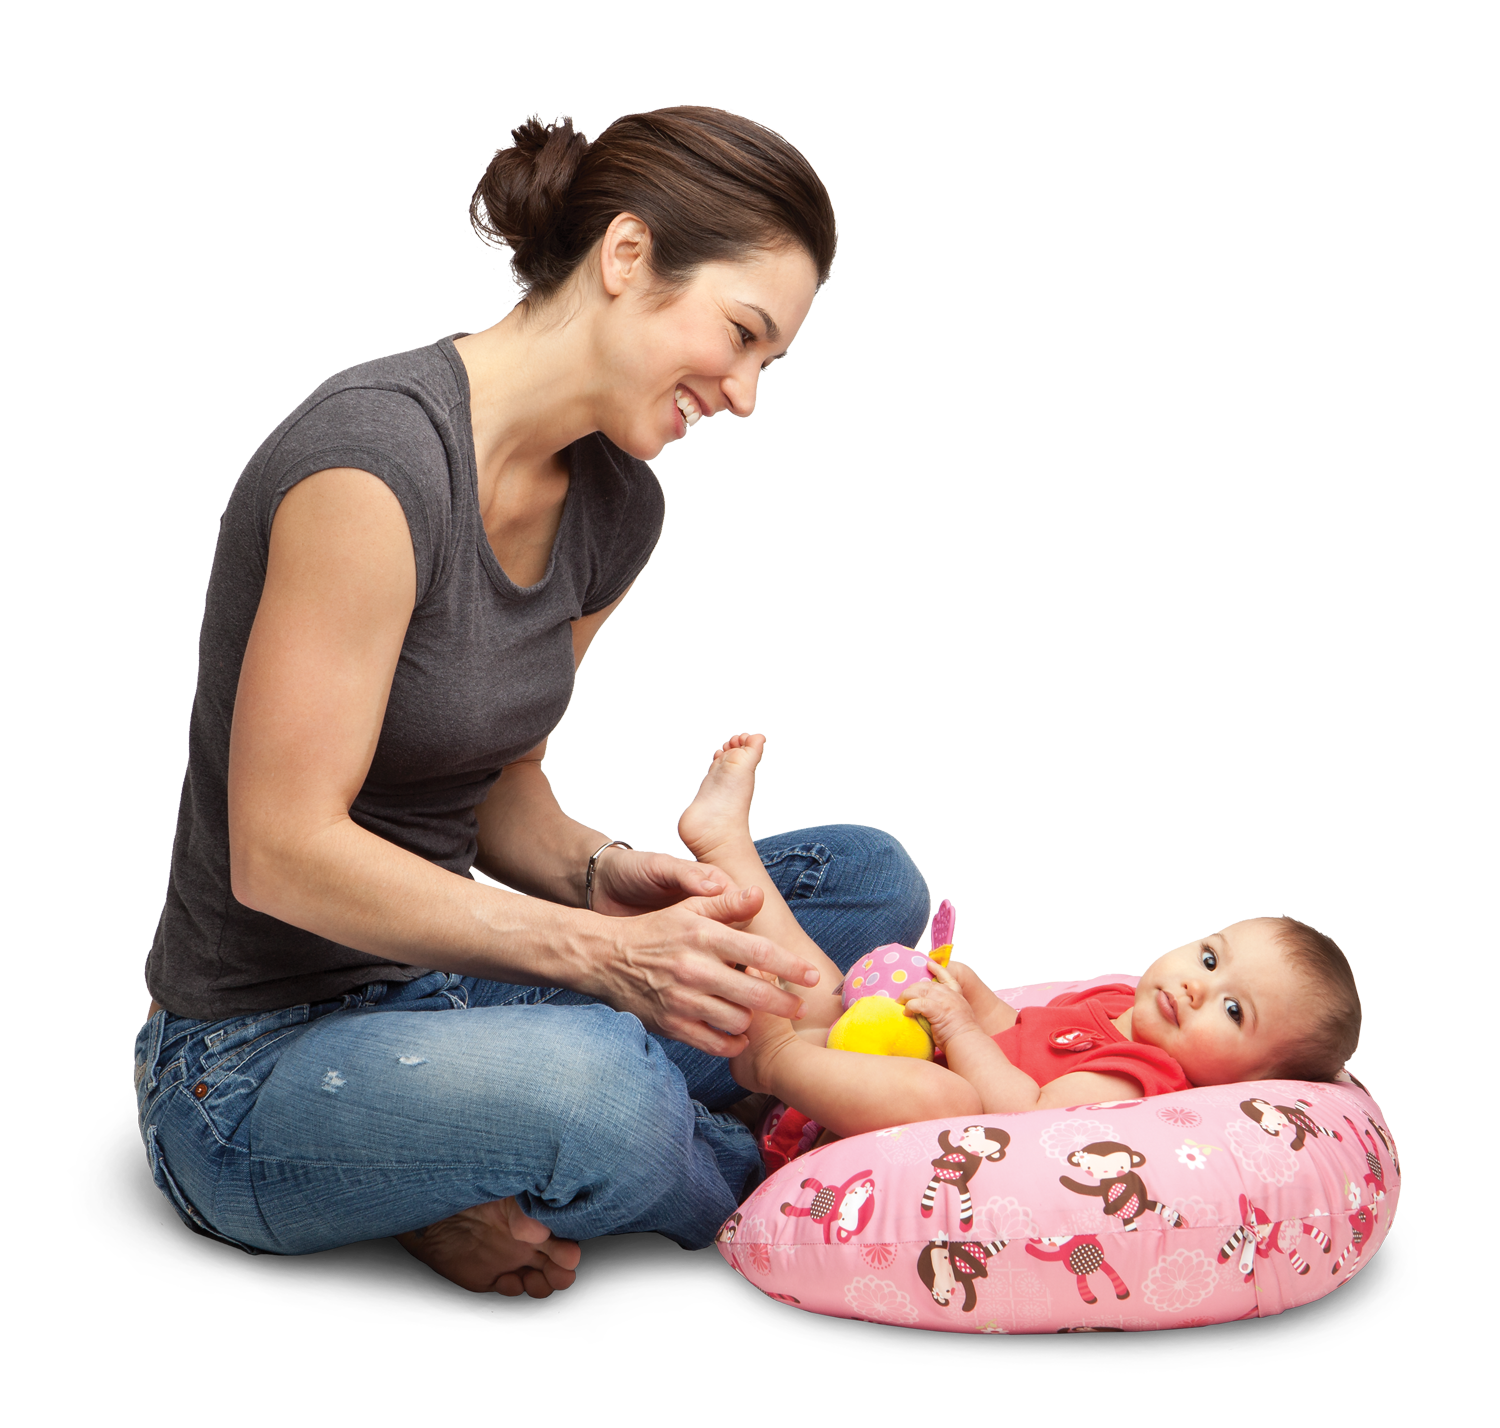 Mom And Baby Png - Boppy Delivers #1 Baby Product To Denveru0027S First Babies Of 2011, Transparent background PNG HD thumbnail